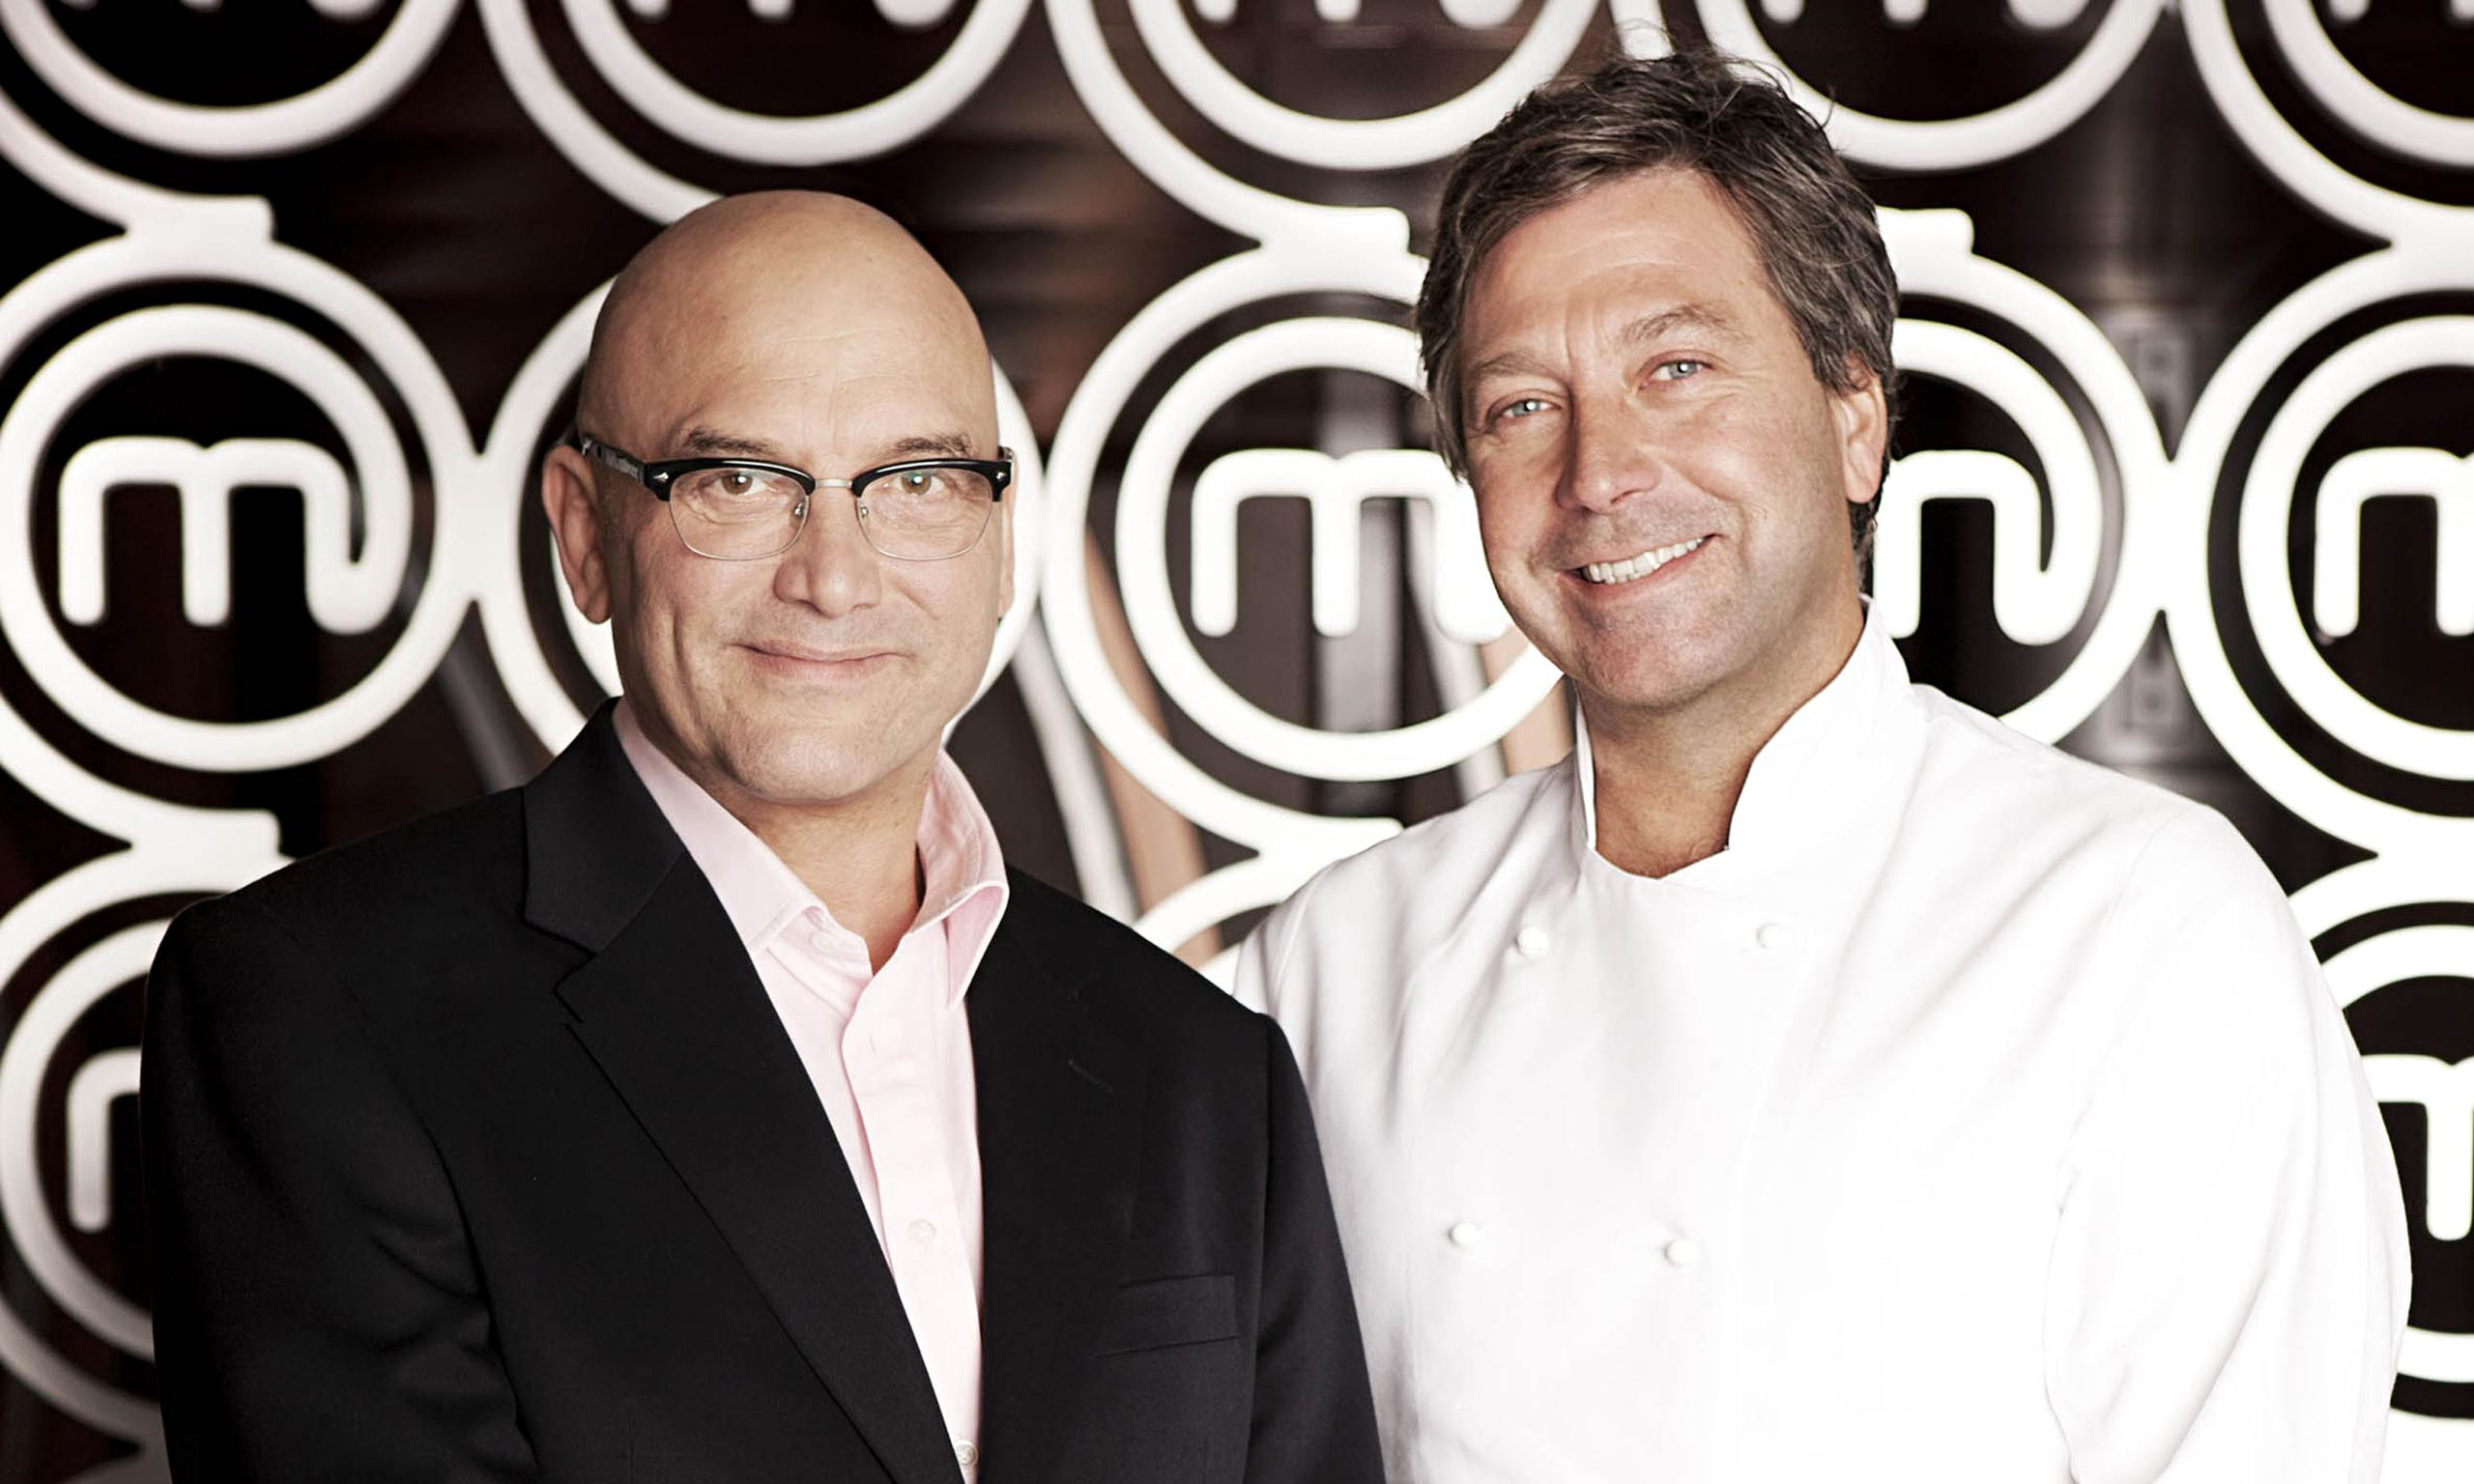 Master Chef: MasterChef Is The Best Television Show In Broadcasting